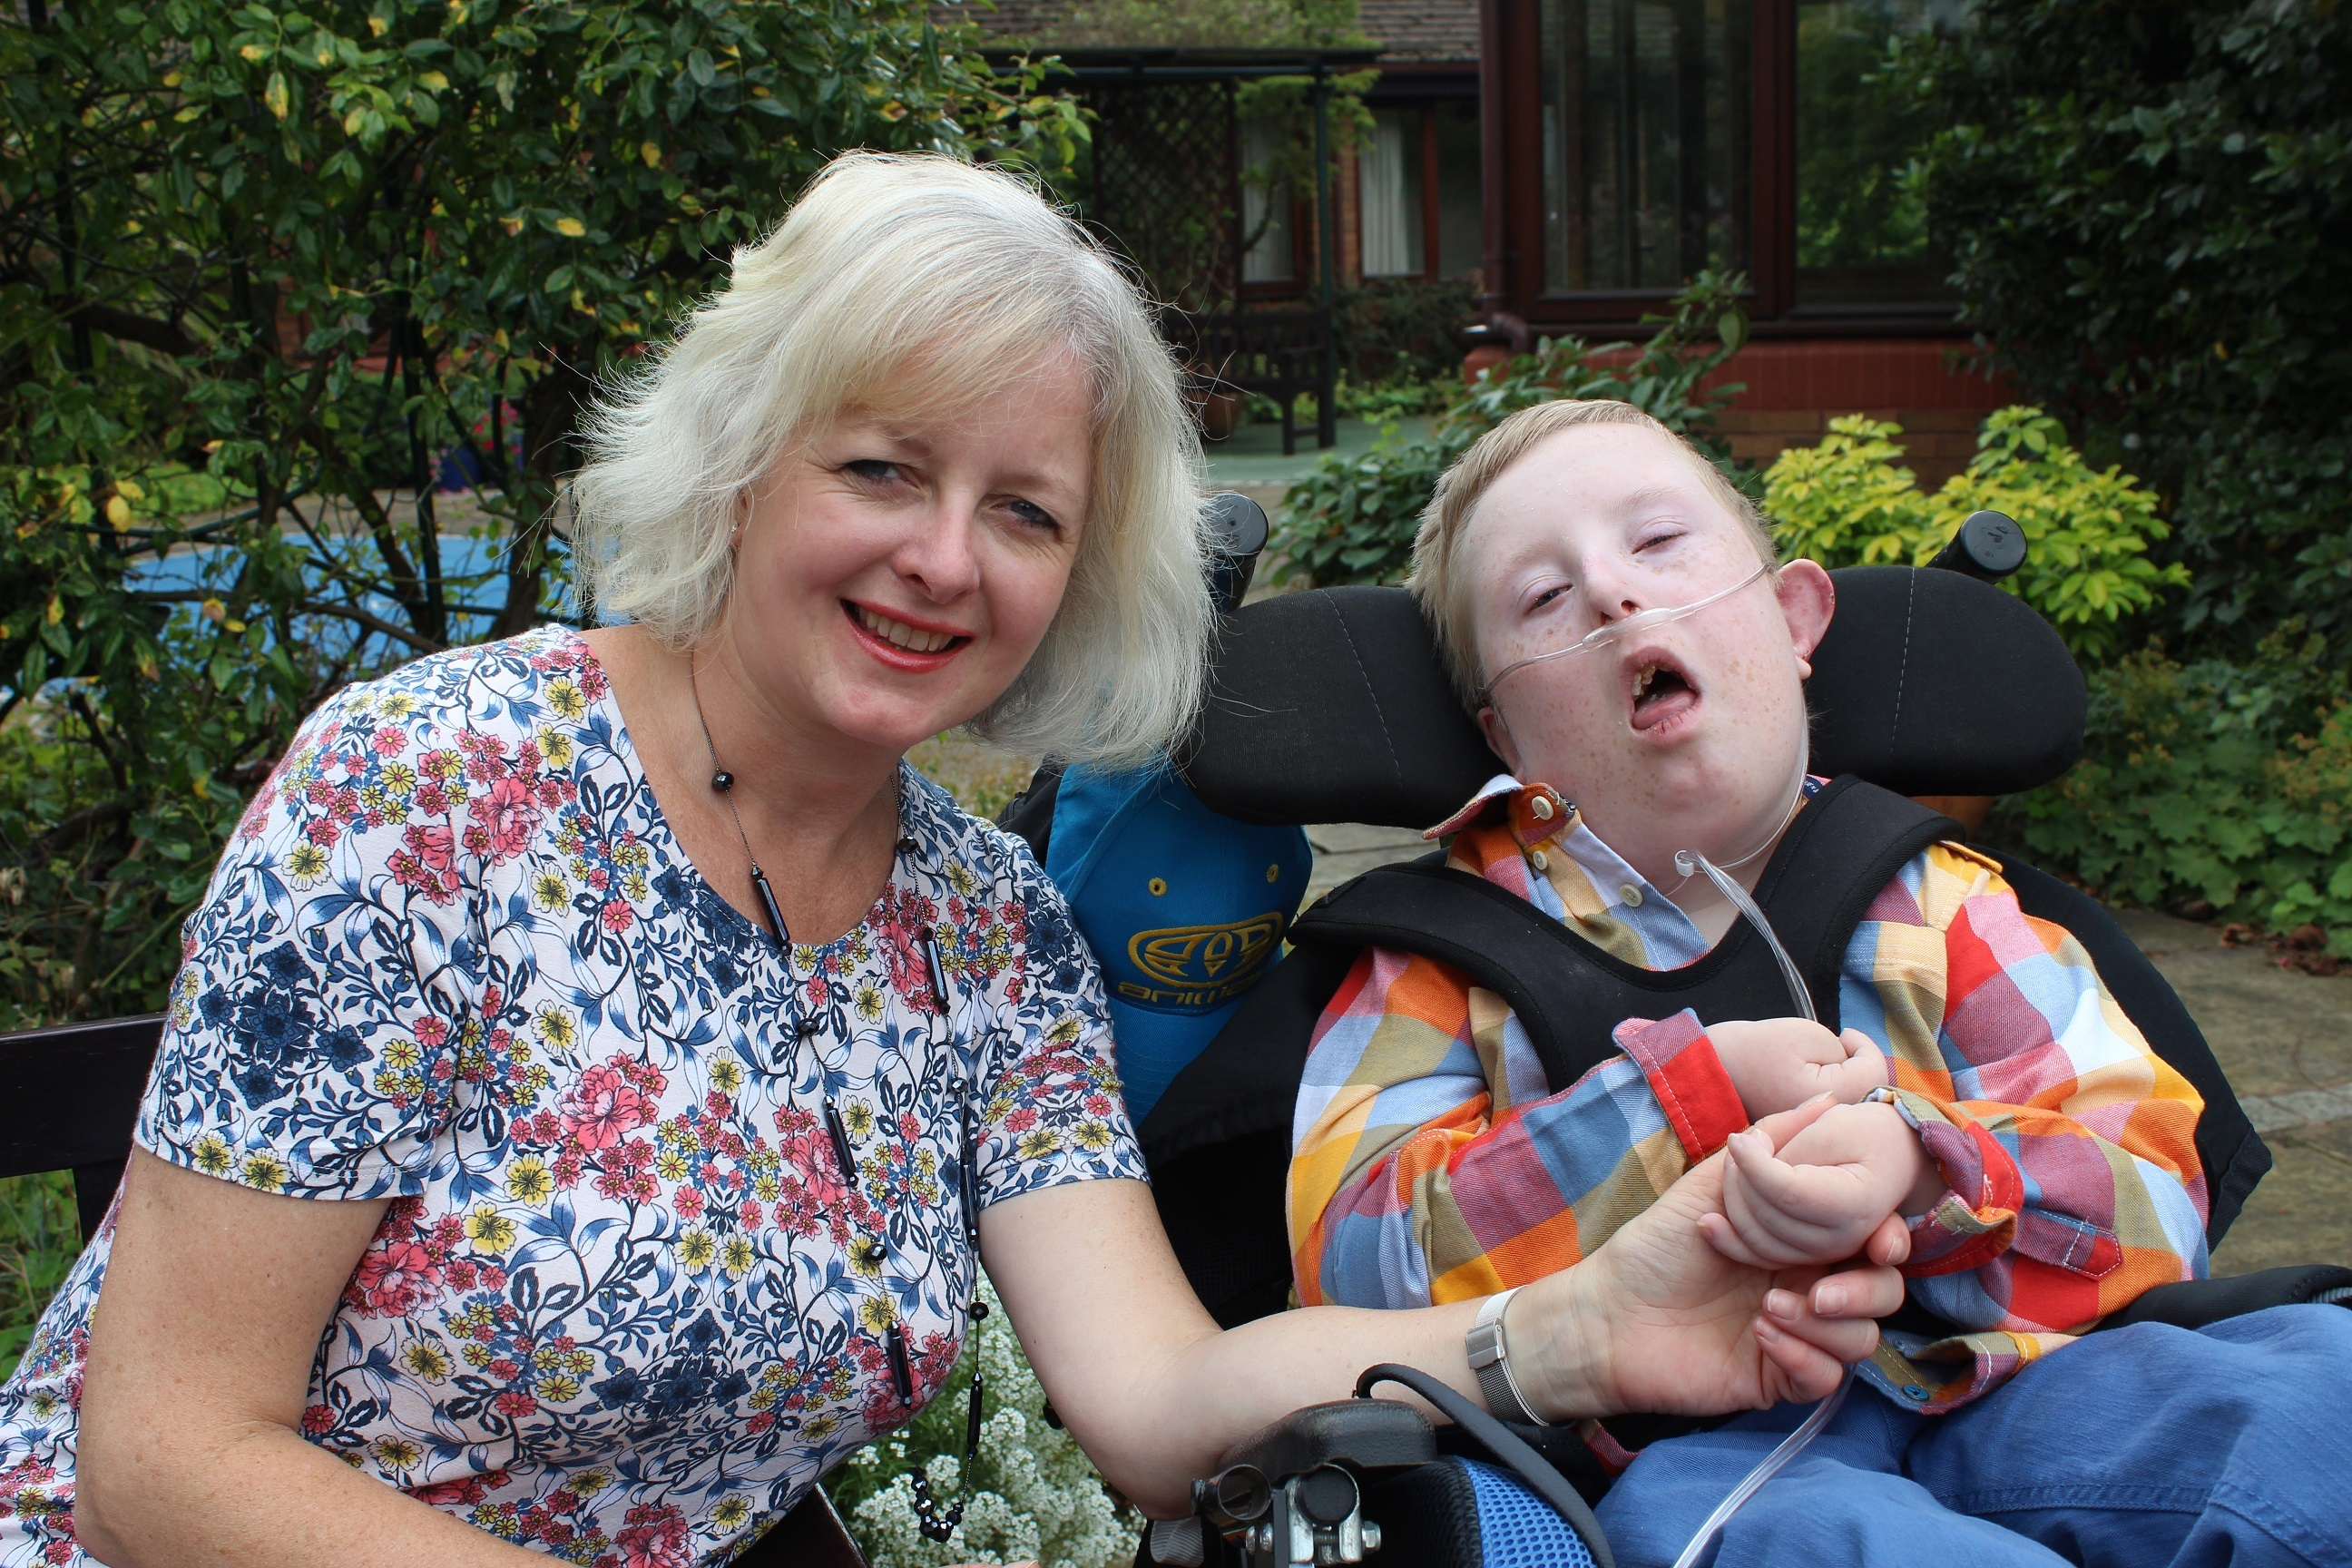 Family finds respite at children's hospice